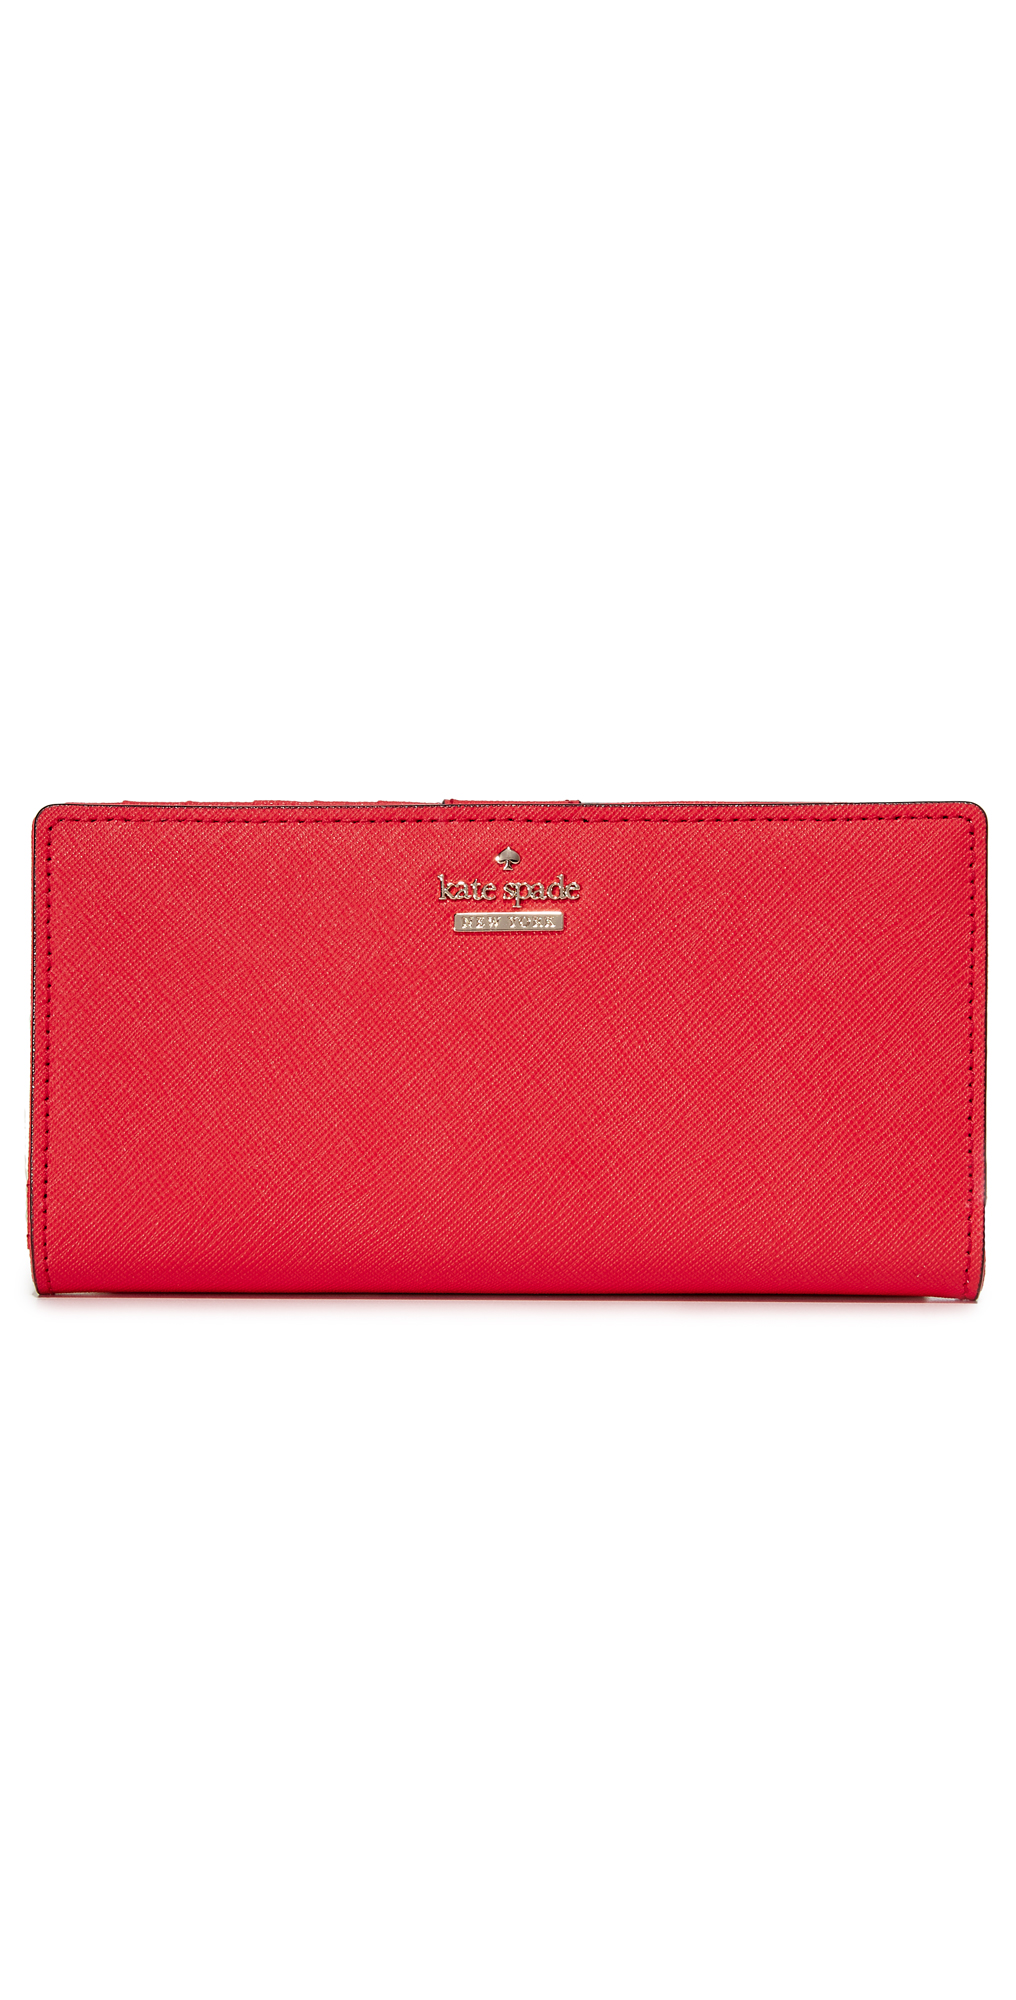 Stacy Snap Wallet Kate Spade New York